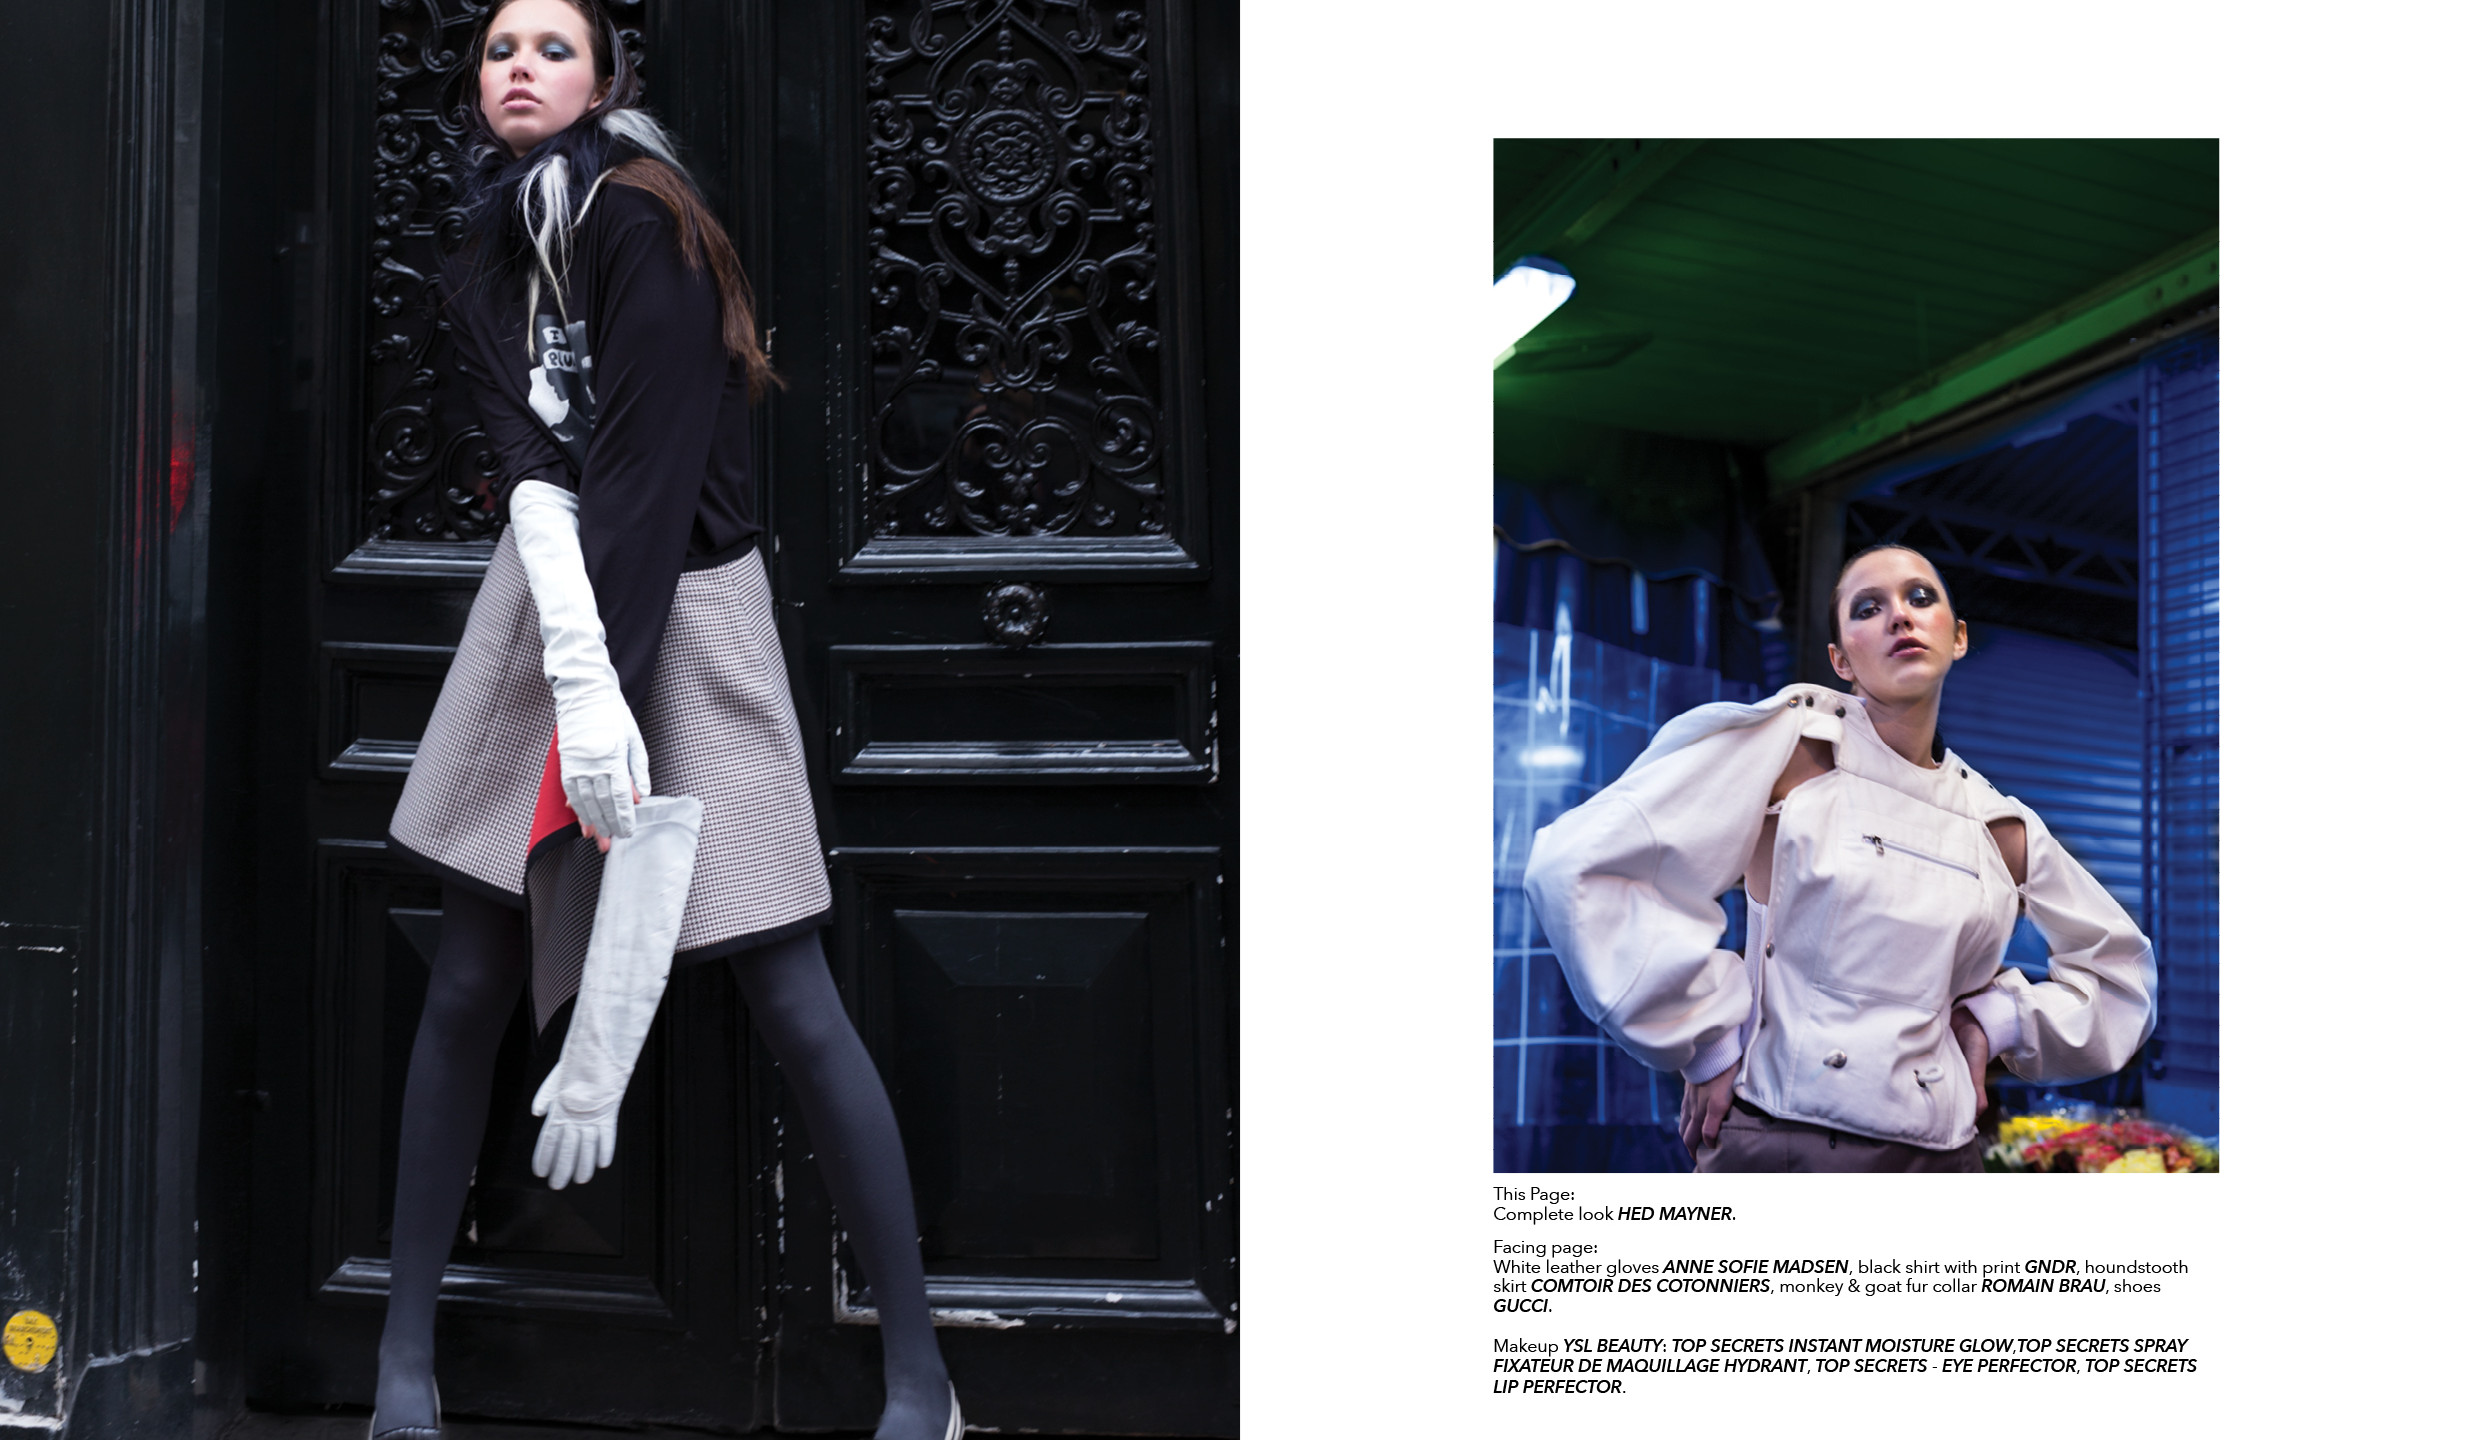 White leather gloves ANNE SOFIE MADSEN, black shirt with print GNDR, houndstooth skirt COMTOIR DES COTONNIERS, monkey & goat fur collar ROMAIN BRAU, shoes GUCCI. On Rigt Complete look HED MAYNER.